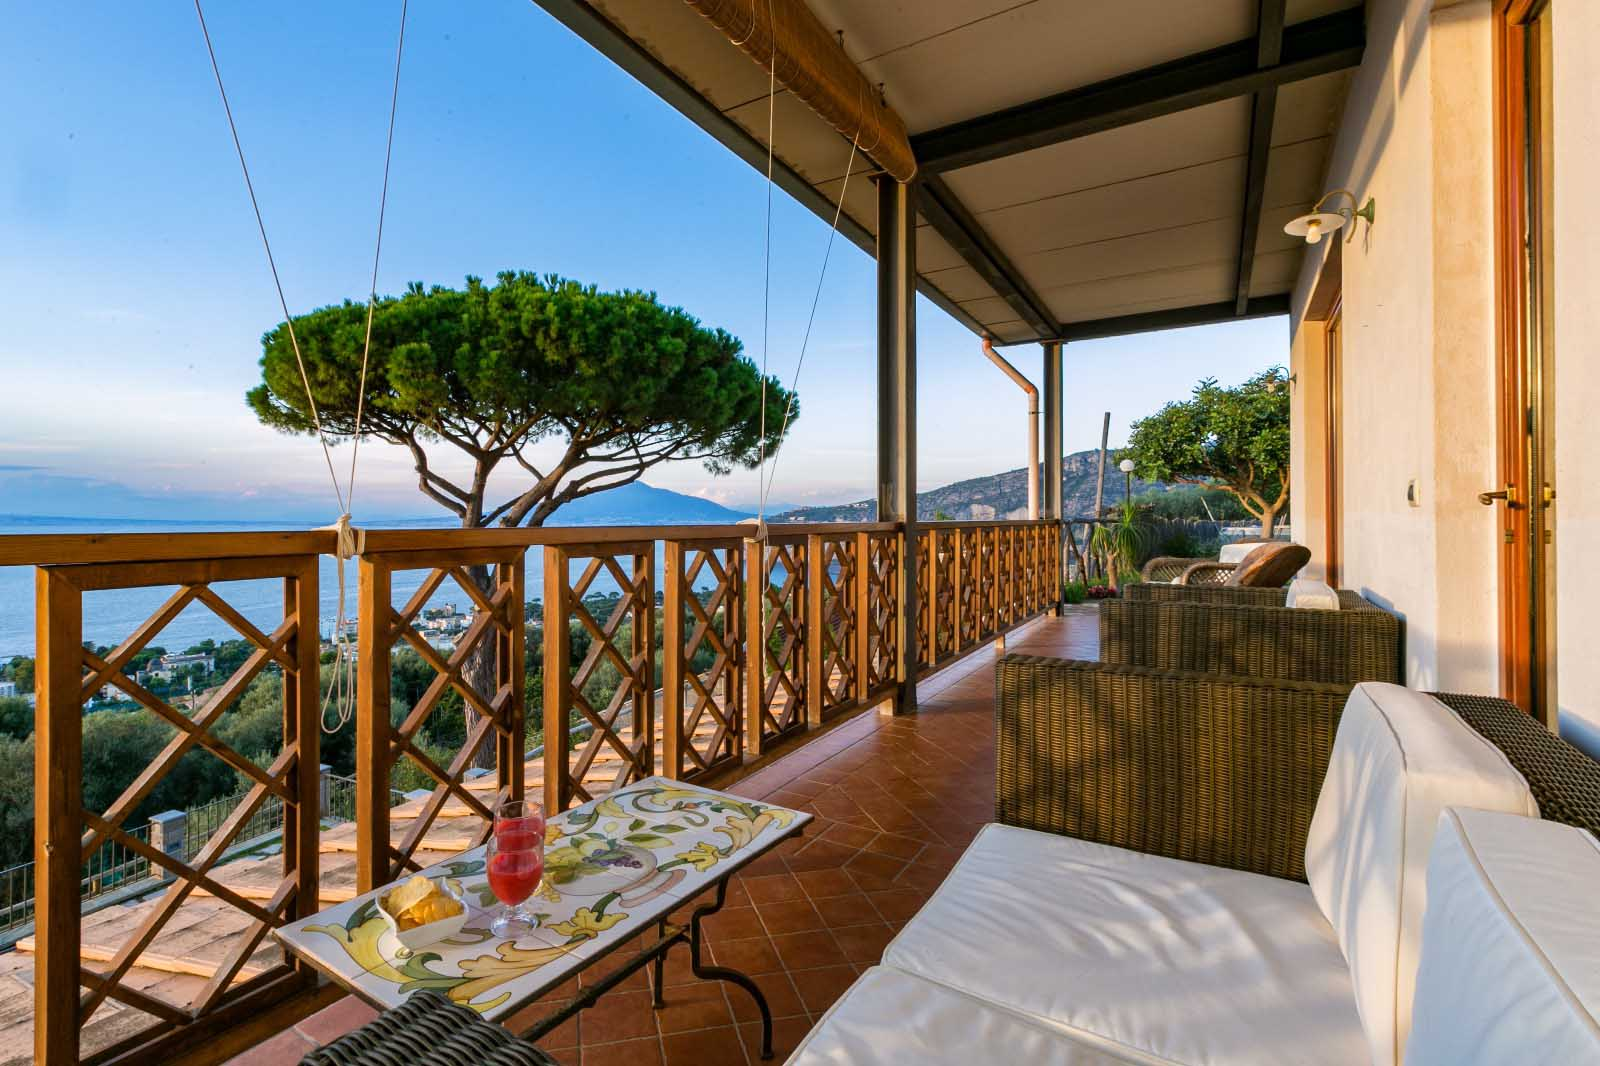 Luxury Sorrento Villa with Sea View